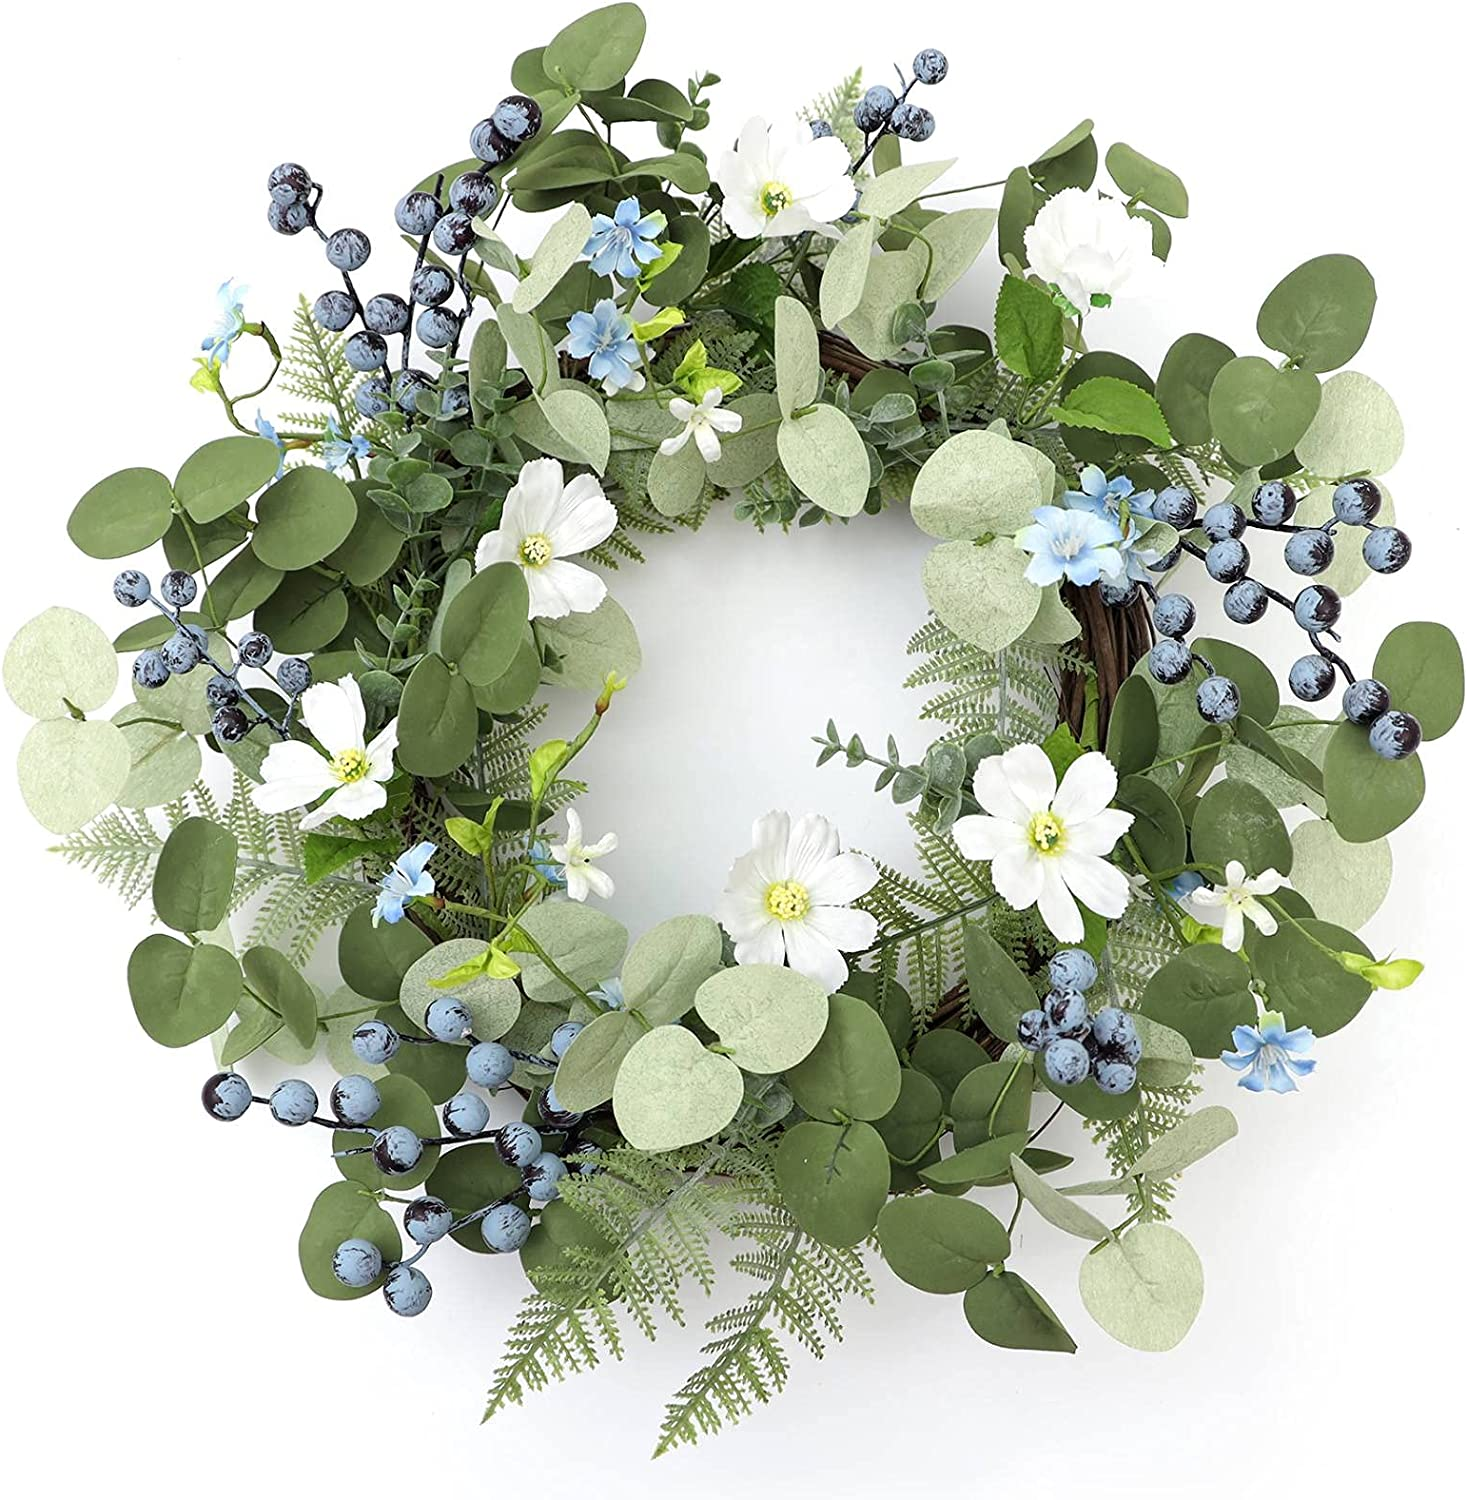 Frdsomar 24inch Large Spring Wreaths for FrontDoor, Artificial Eucalyptus Wreath with Blueberry and Flower Wreath for Indoor Outdoor, Spring, Summer, Window, Wall, Home Decor